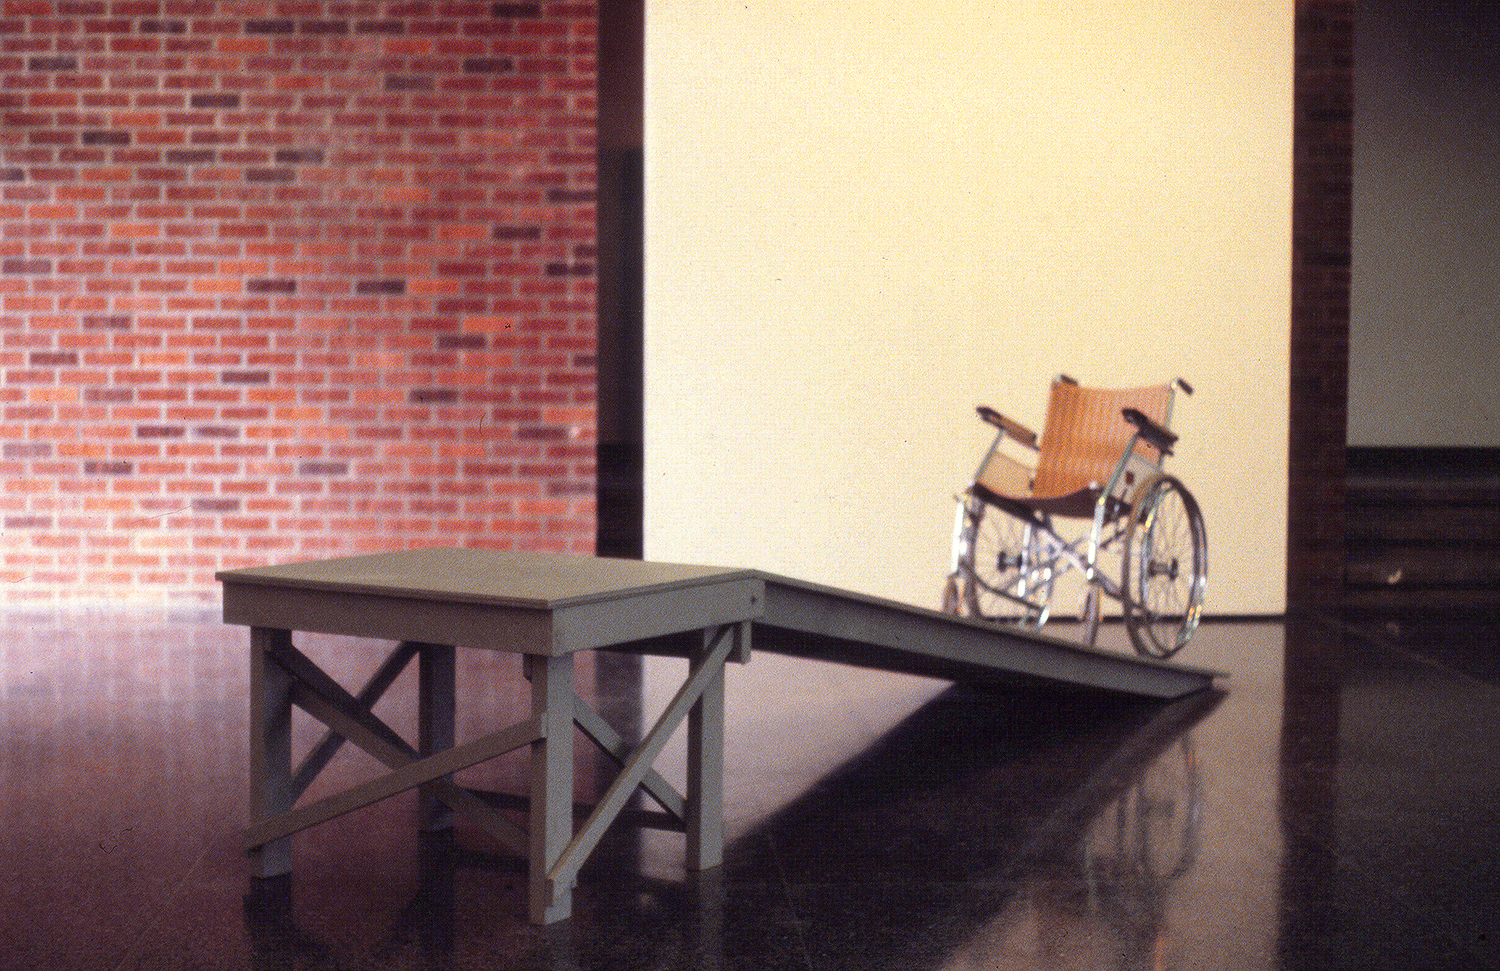 Self-Elevation Systems: Misfit, Humility 1979  Wood/Wheel Chair 15'x 3'x 3' Linfield College, McMinnville, OR